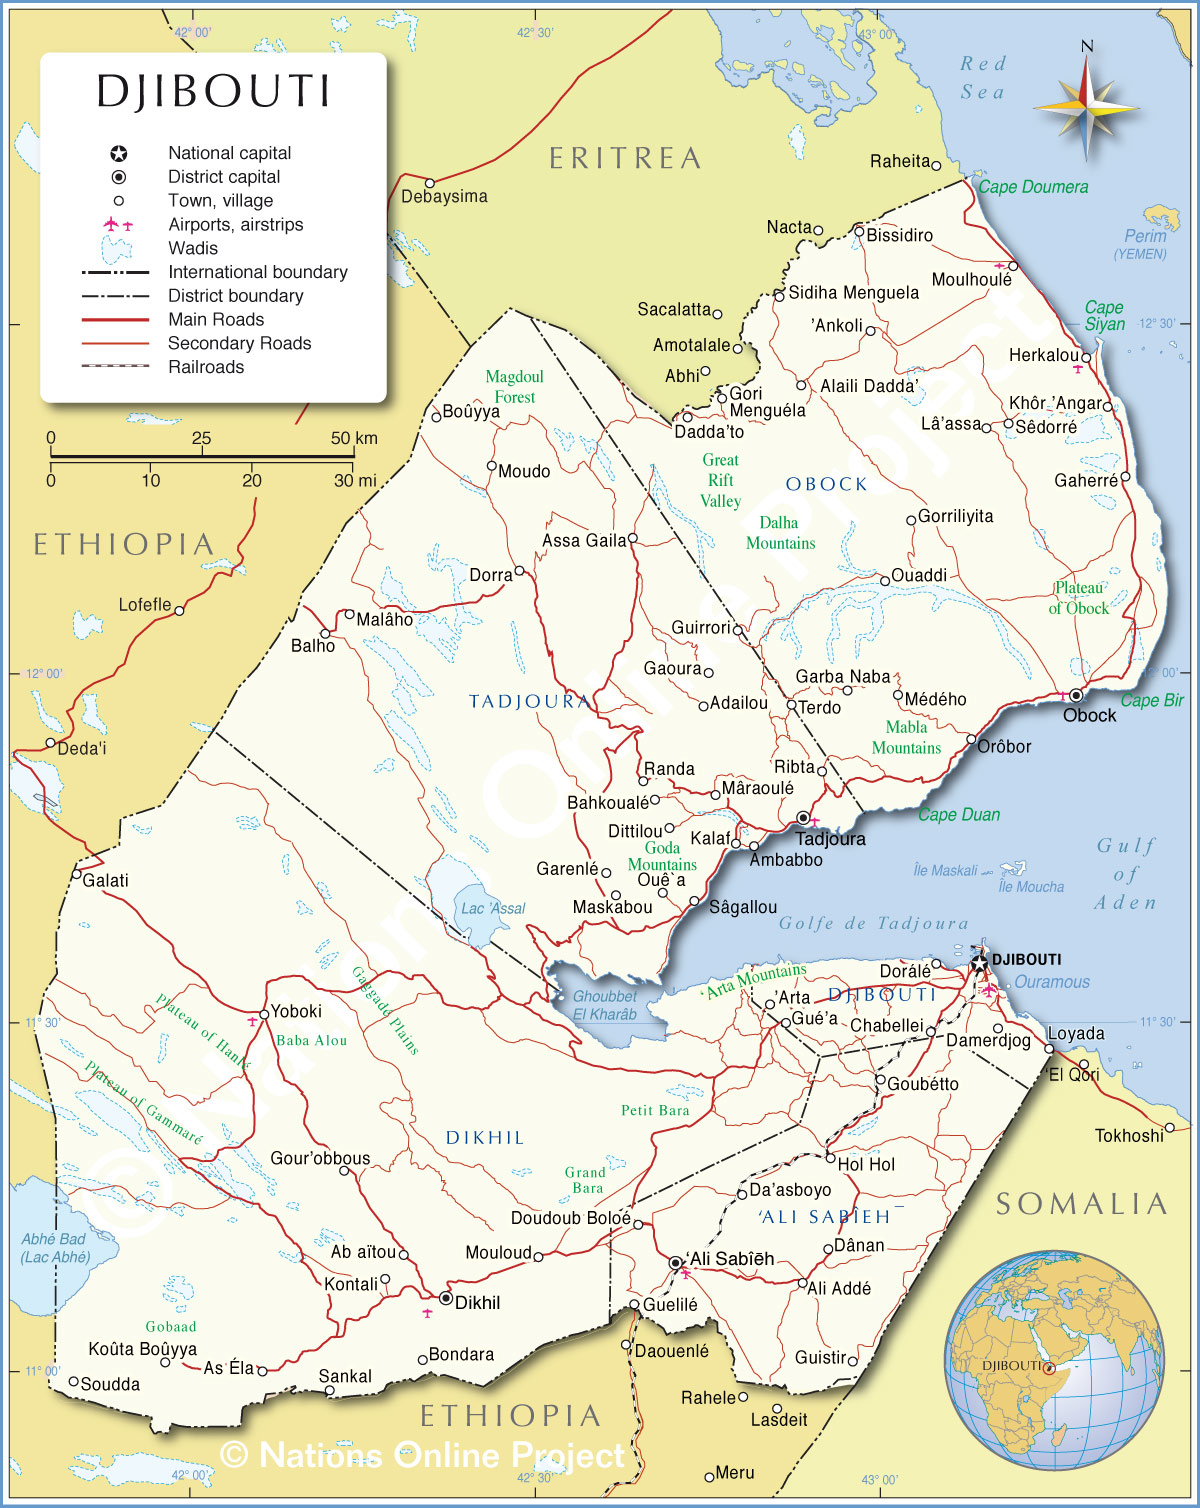 Political Map of Djibouti (1200 pixel) - Nations Online Project